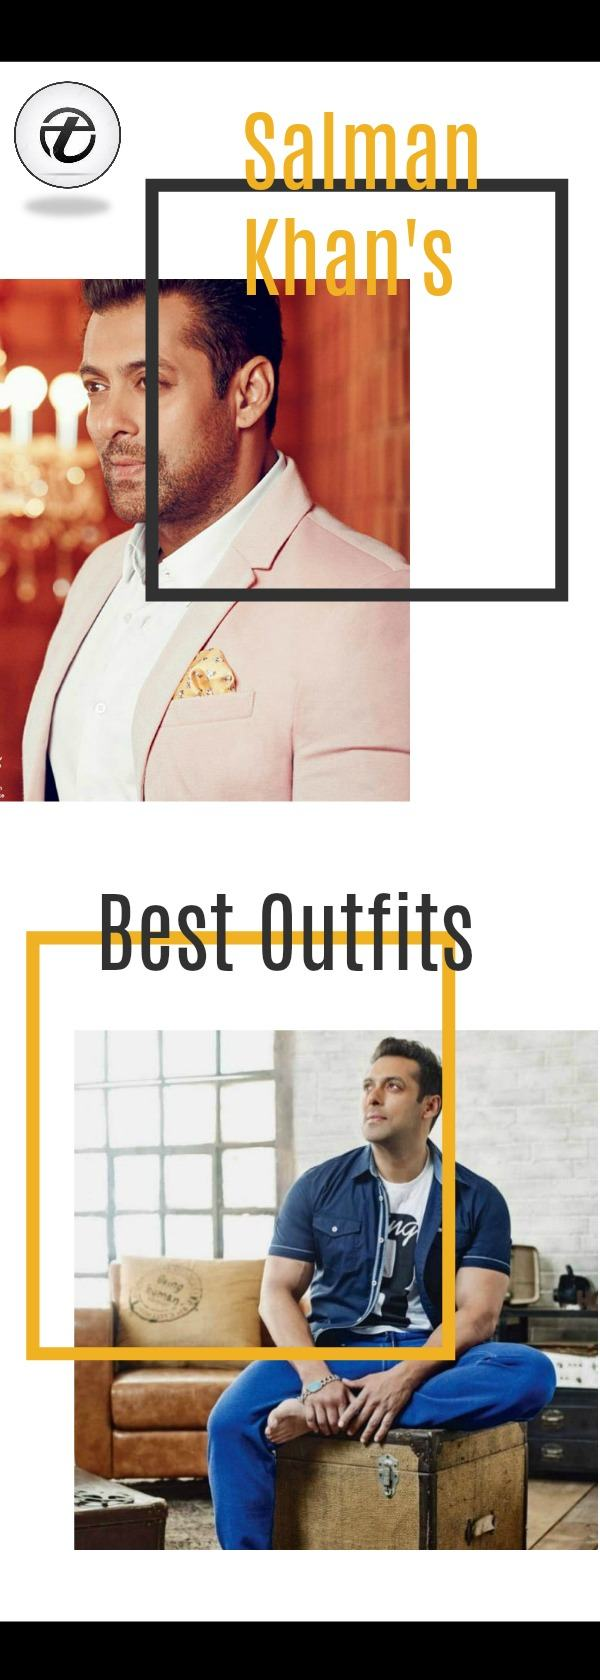 best outfits of salman khan